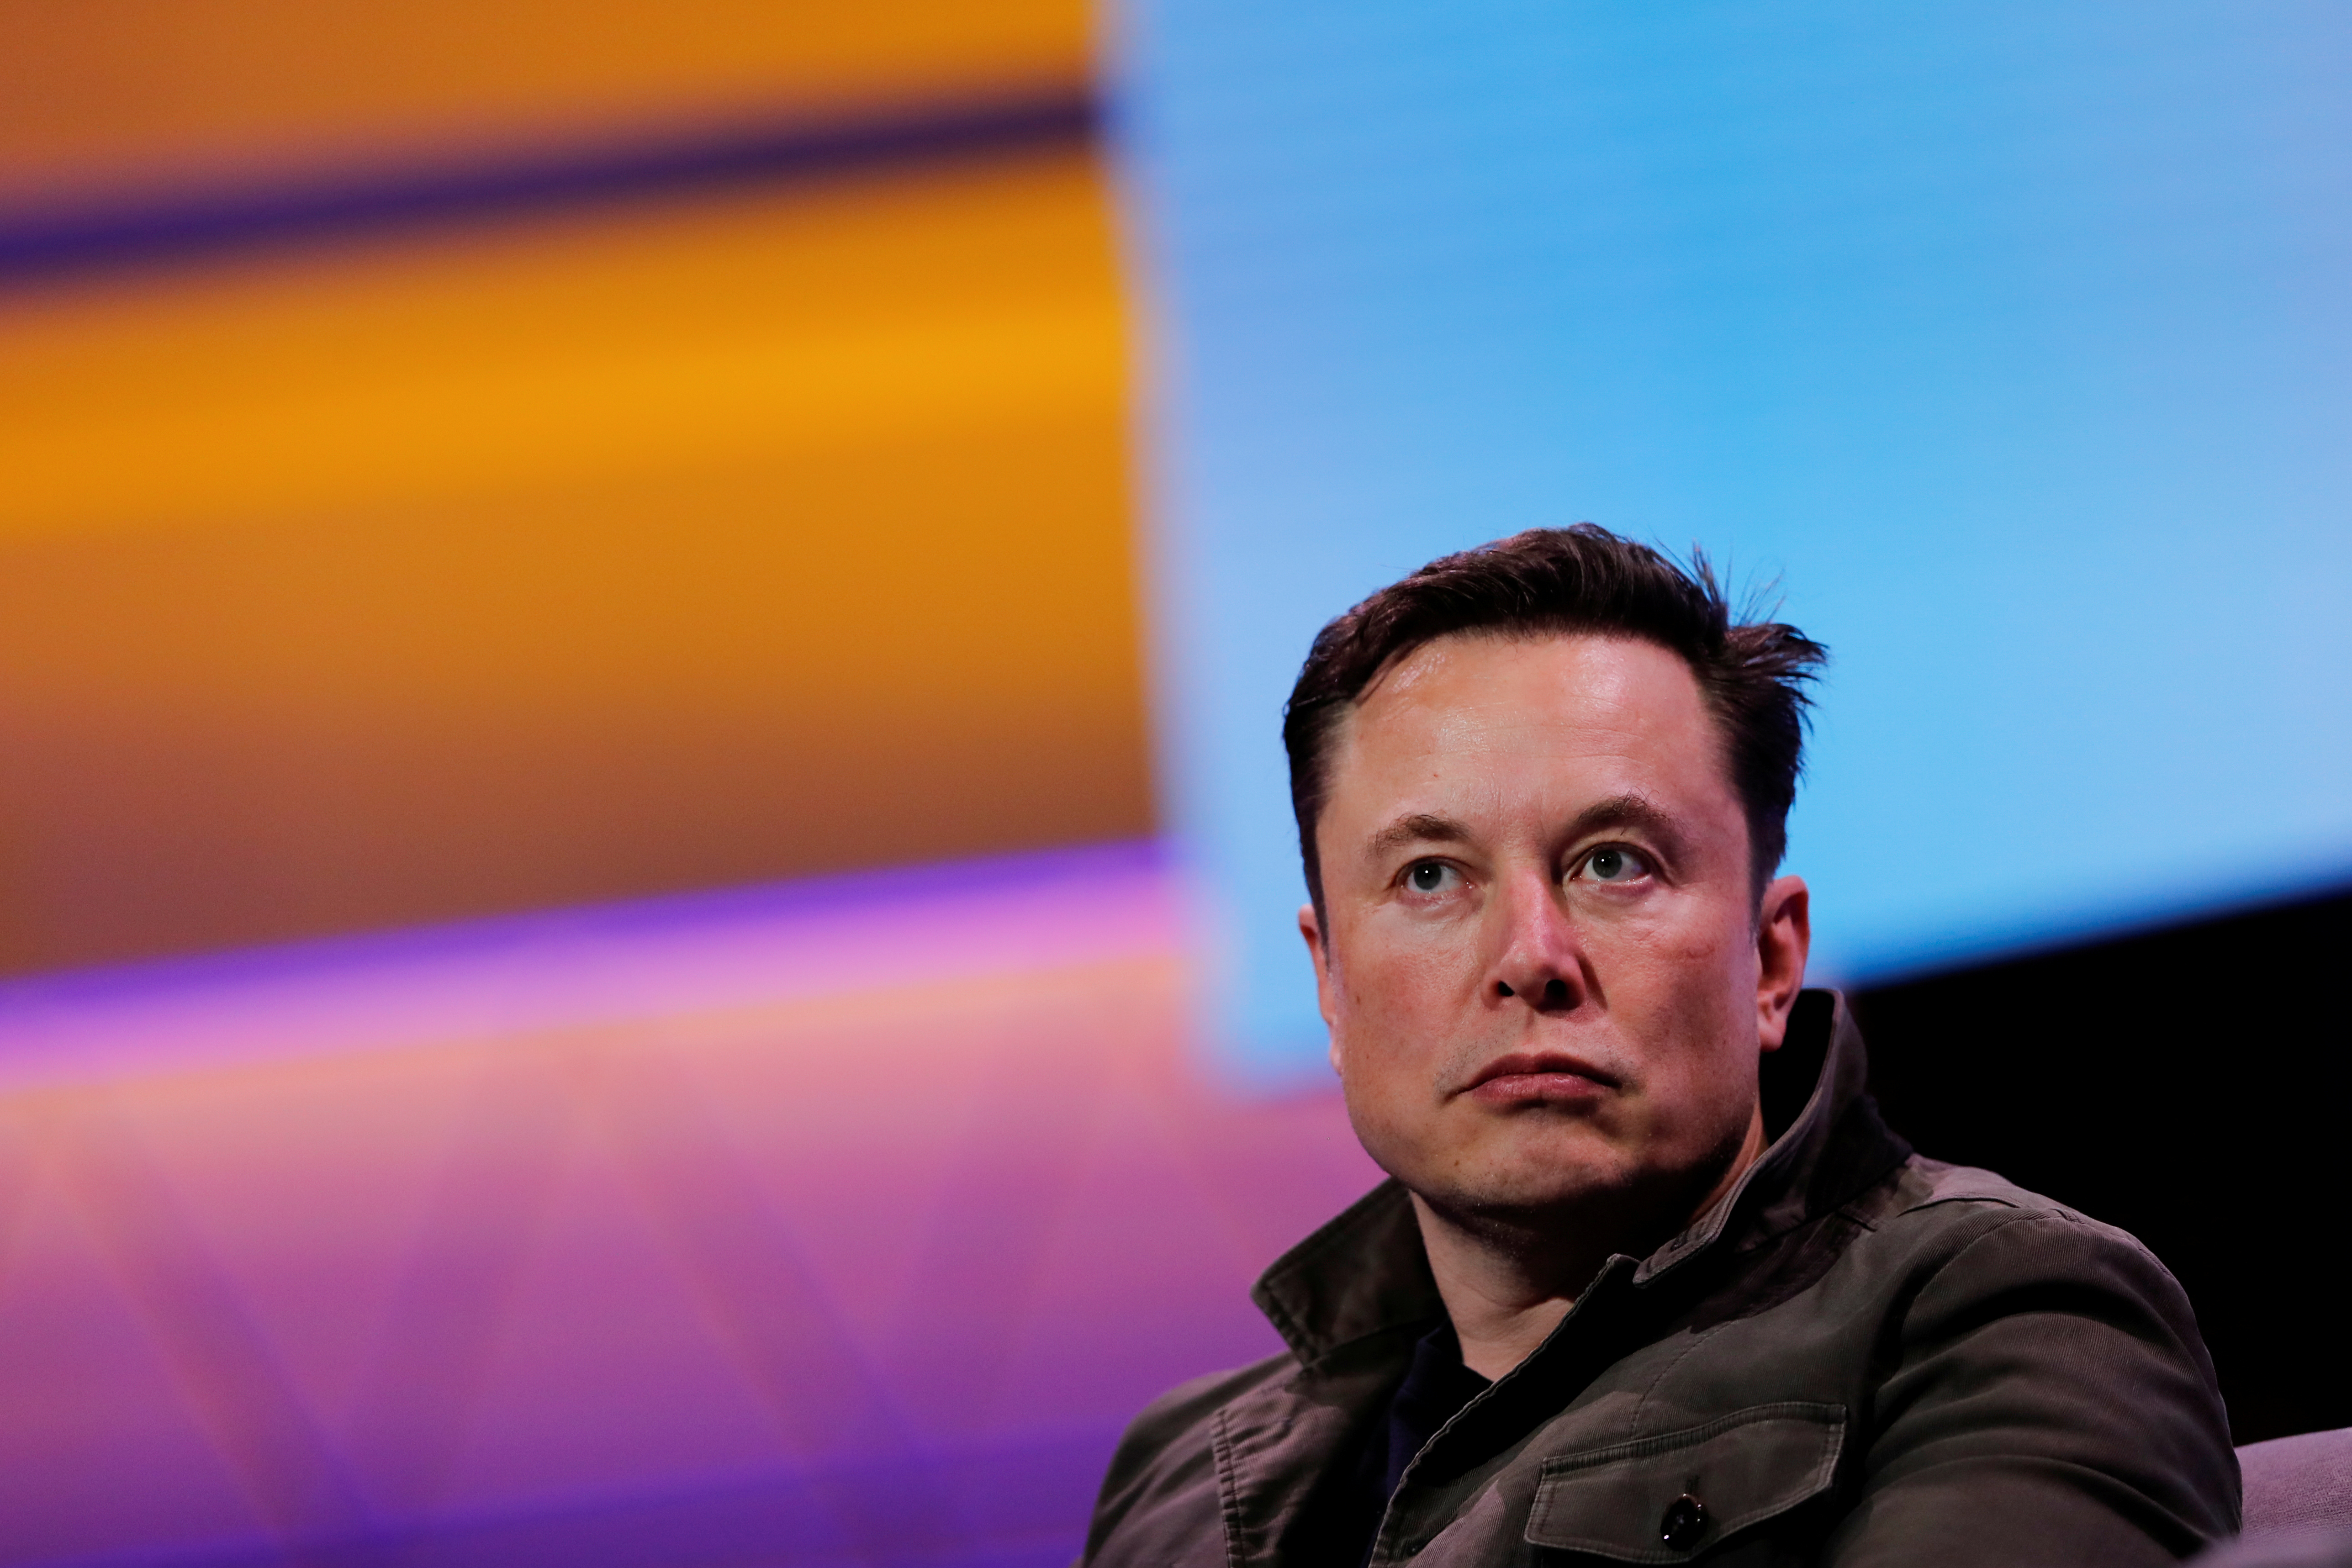 SpaceX owner and Tesla CEO Elon Musk speaks during a conversation at the E3 gaming convention in Los Angeles, California, U.S., June 13, 2019.  REUTERS/Mike Blake